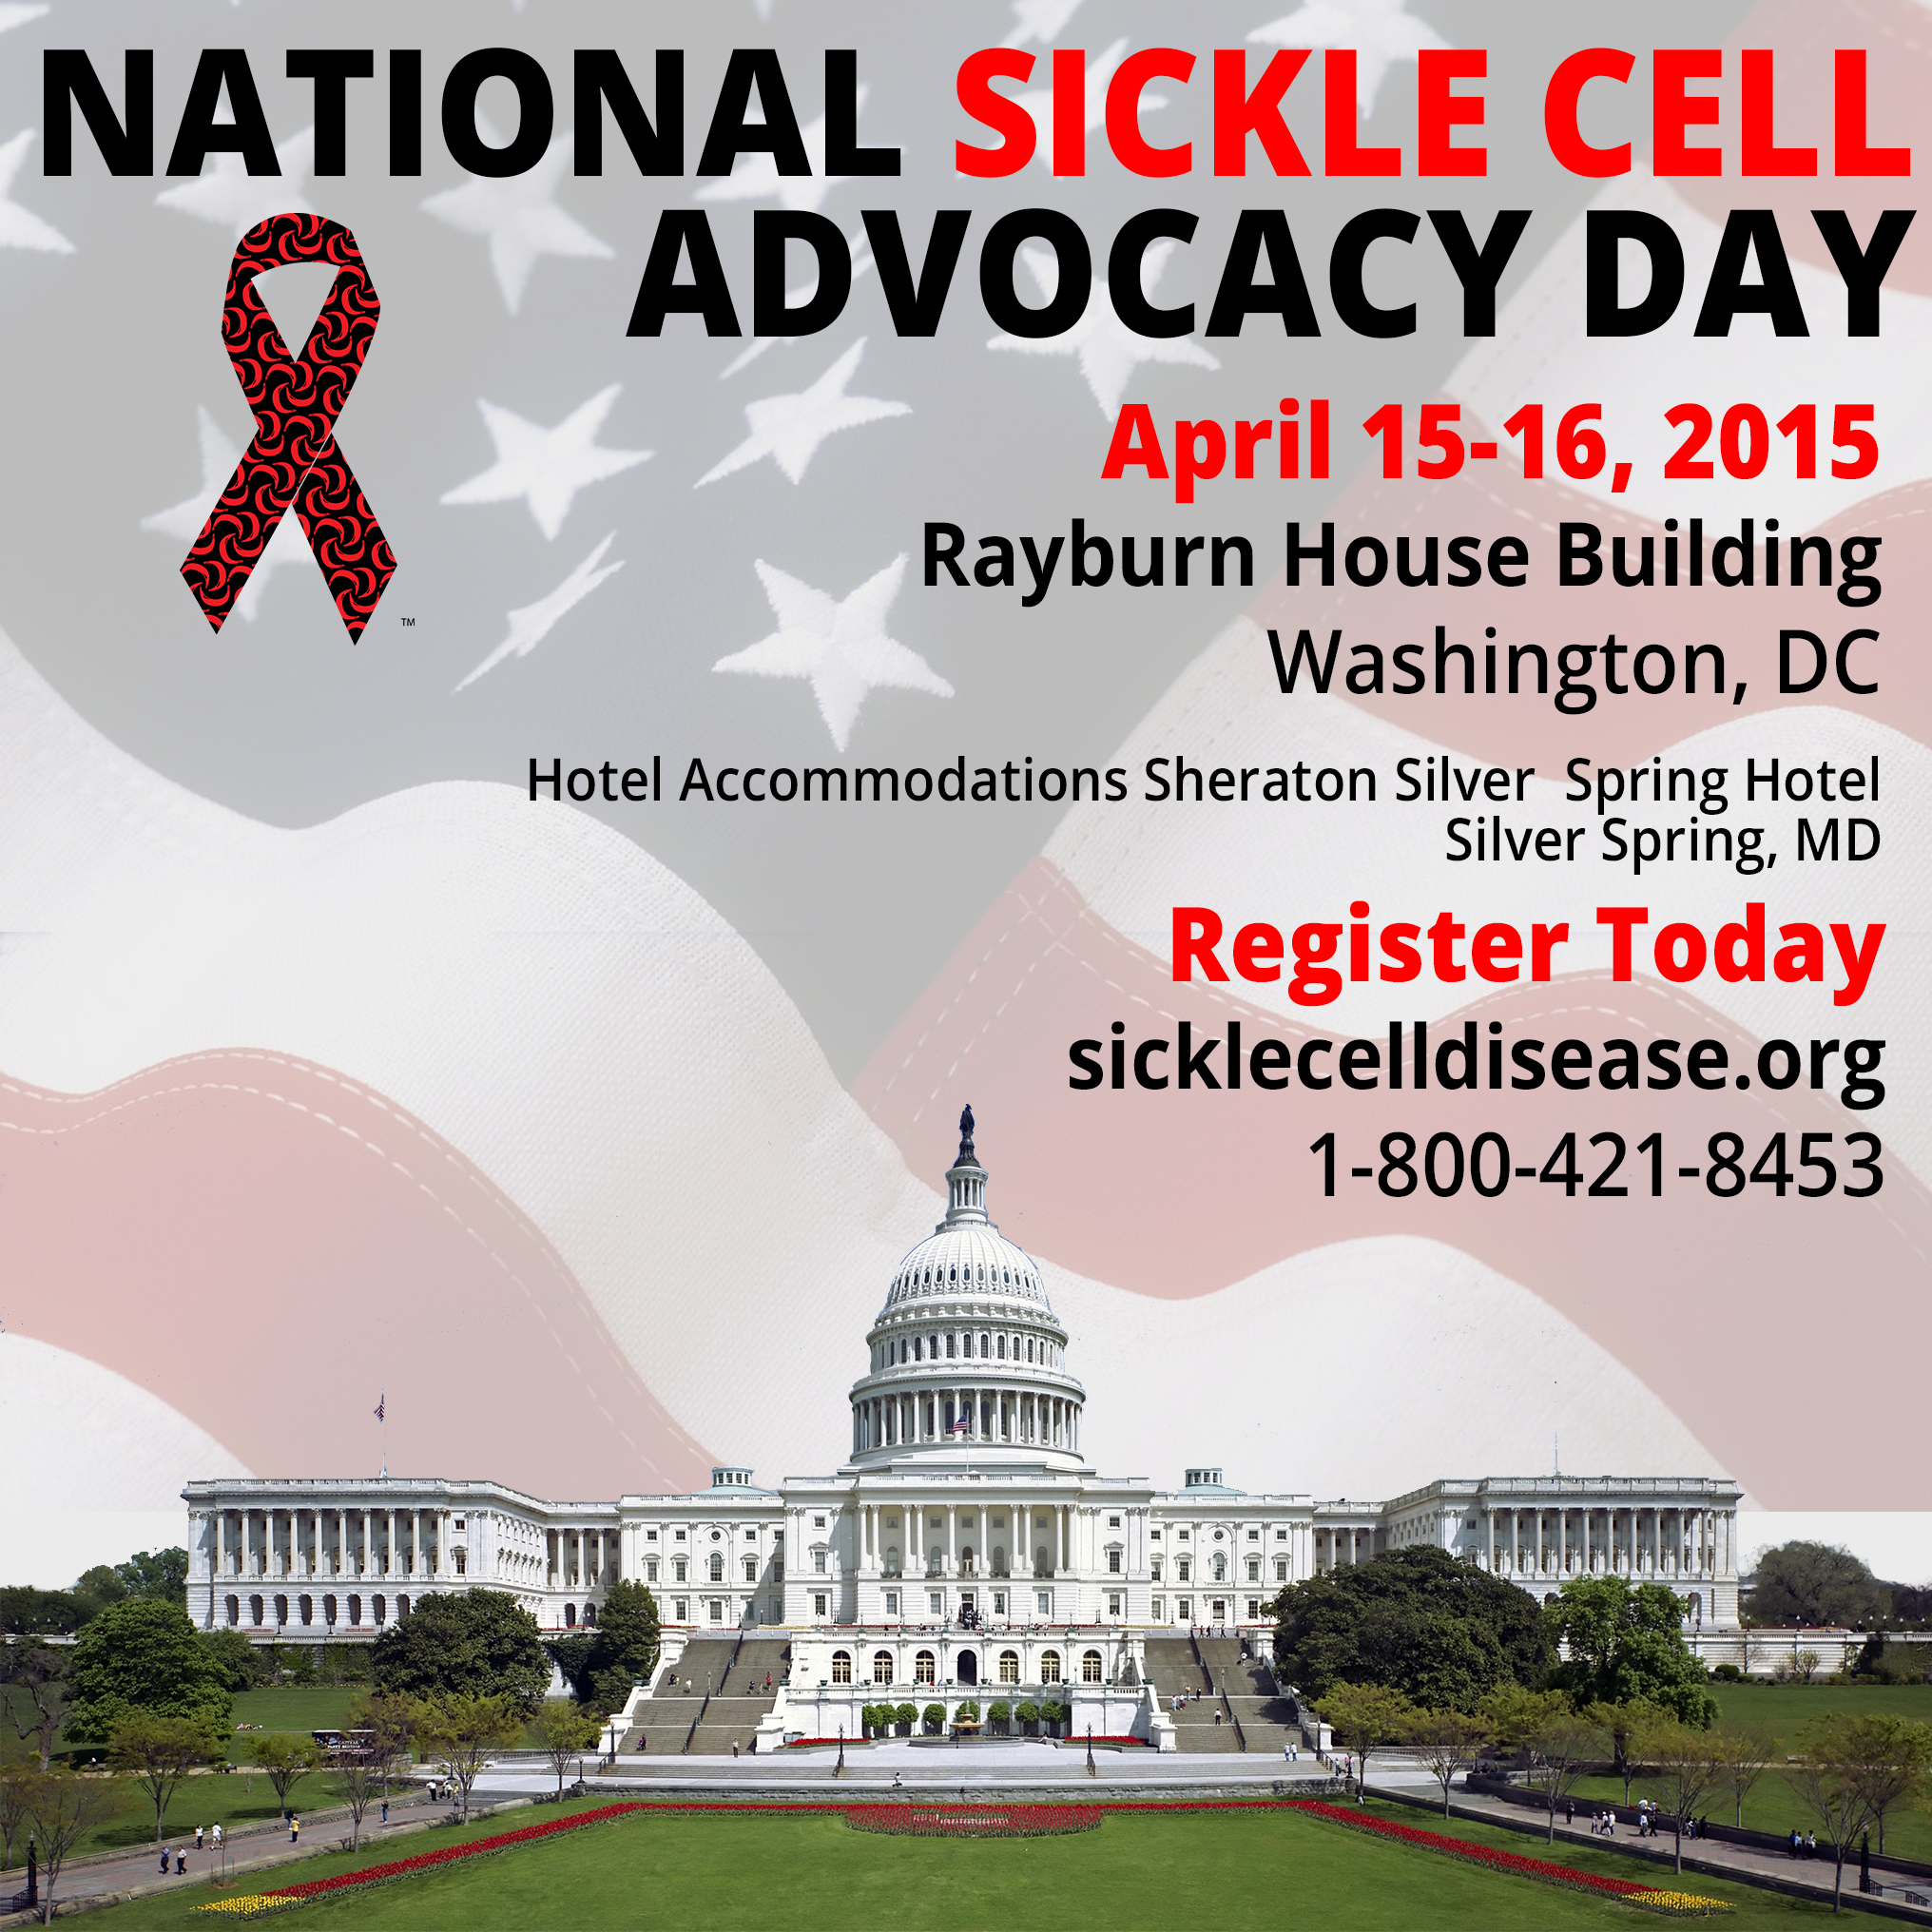 Photo: SCDAA/sicklecelldisease.org